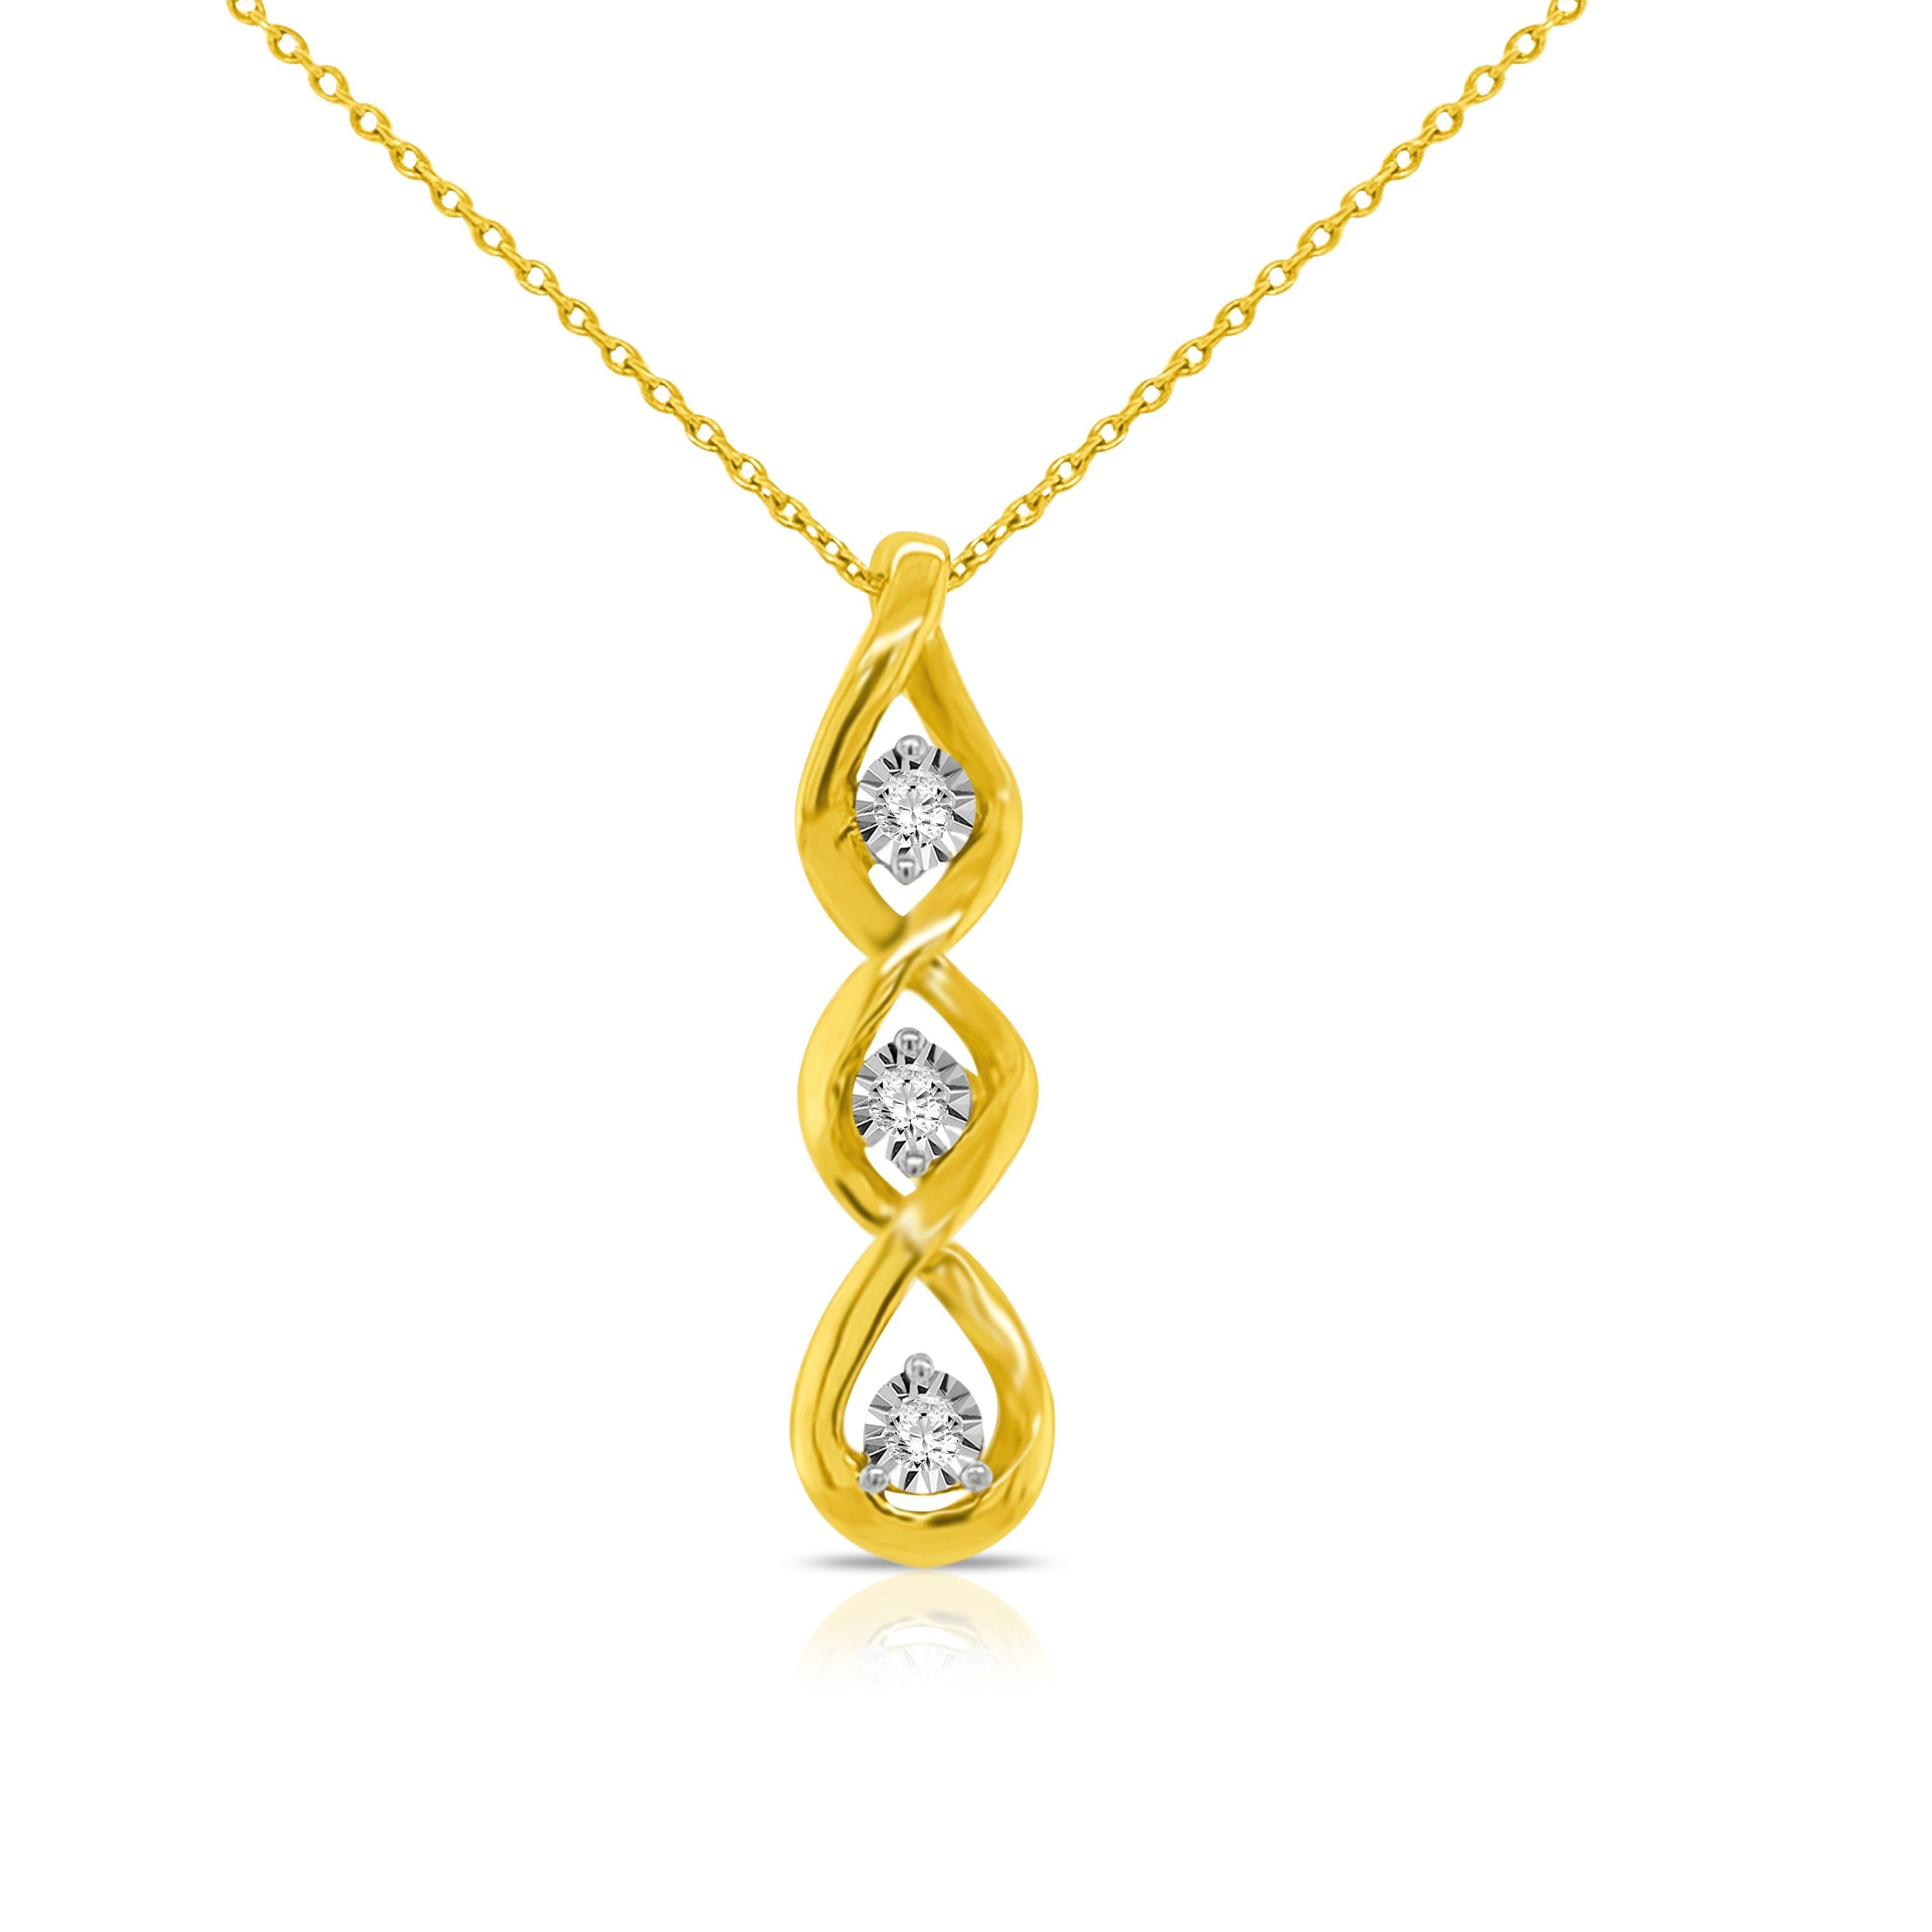 1/10 Carat 3-Stone Diamond Pendant in 10K Yellow Gold - 18